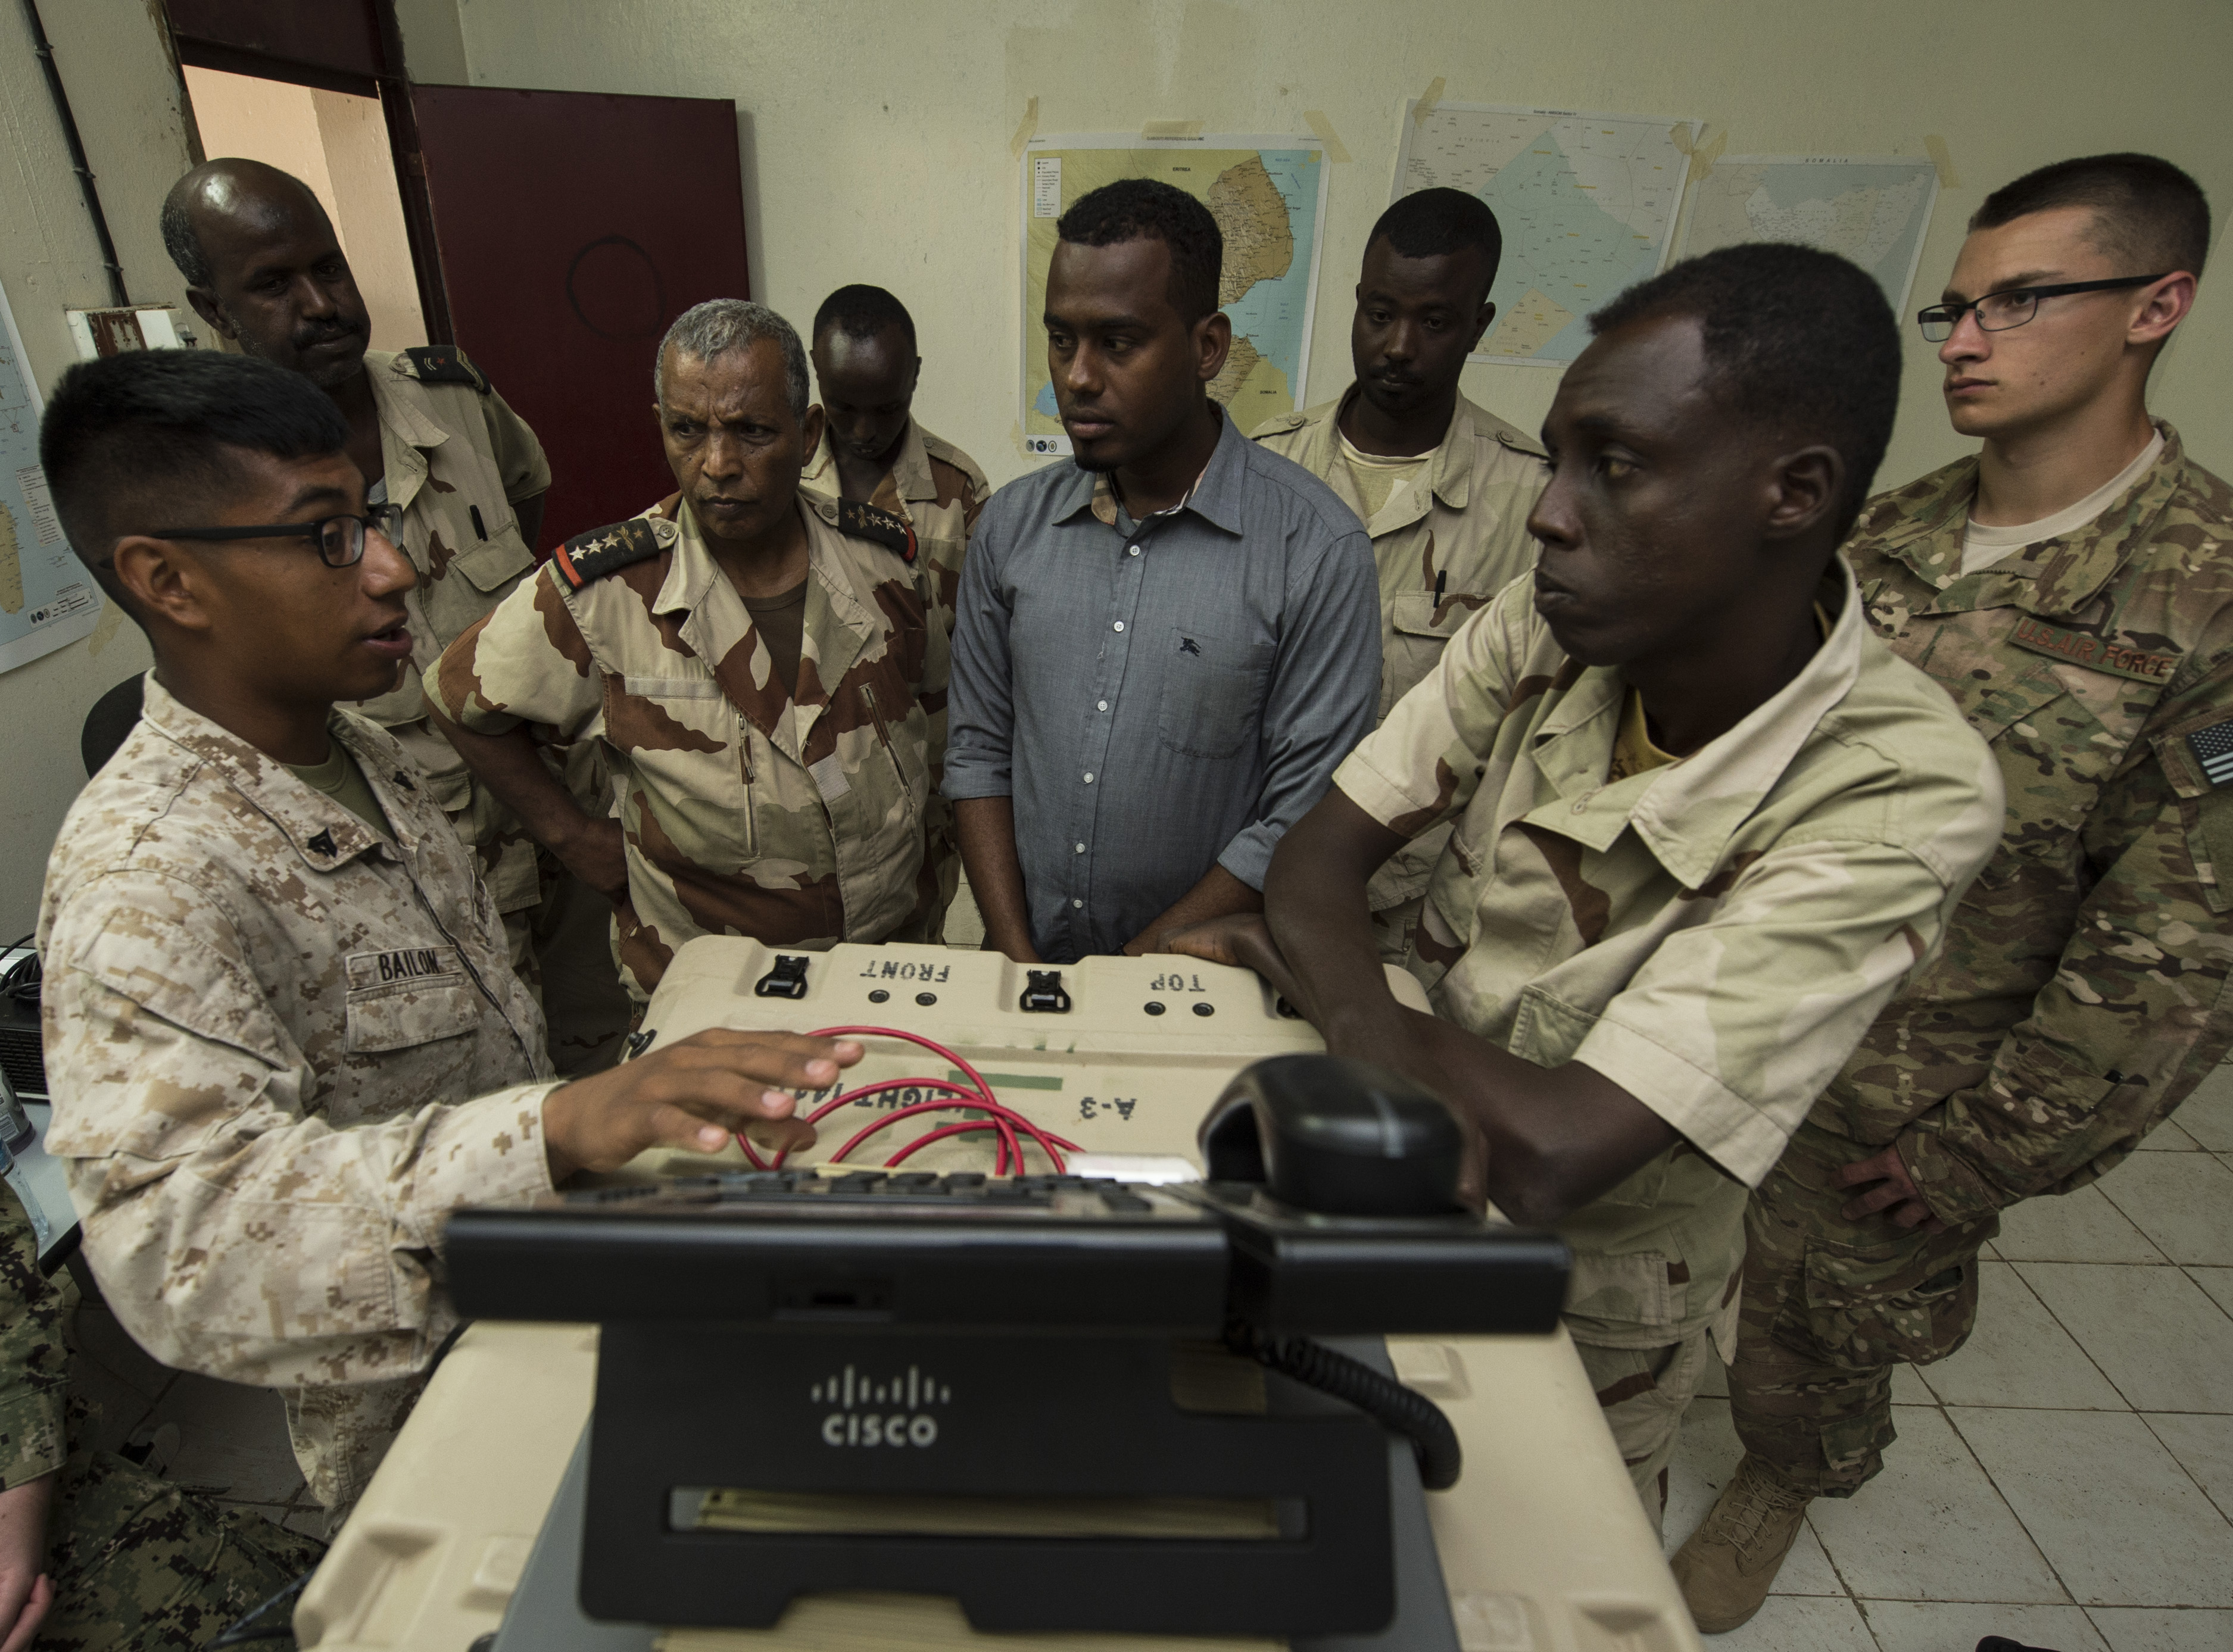 U.S. Marine Corps Cpl. Nehemias Bailon, Combined Joint Task Force-Horn of Africa, Africa Data Sharing Network (ADSN) help desk lead (left), demonstrates how to use communication software Feb. 18, 2016, in Djibouti. Djiboutian Armed Forces (FAD) soldiers learned how to efficiently operate a terminal to access the ADSN. The FAD uses the ADSN to communicate with forward deployed soldiers. (U.S. Air Force photo by Senior Airman Peter Thompson)